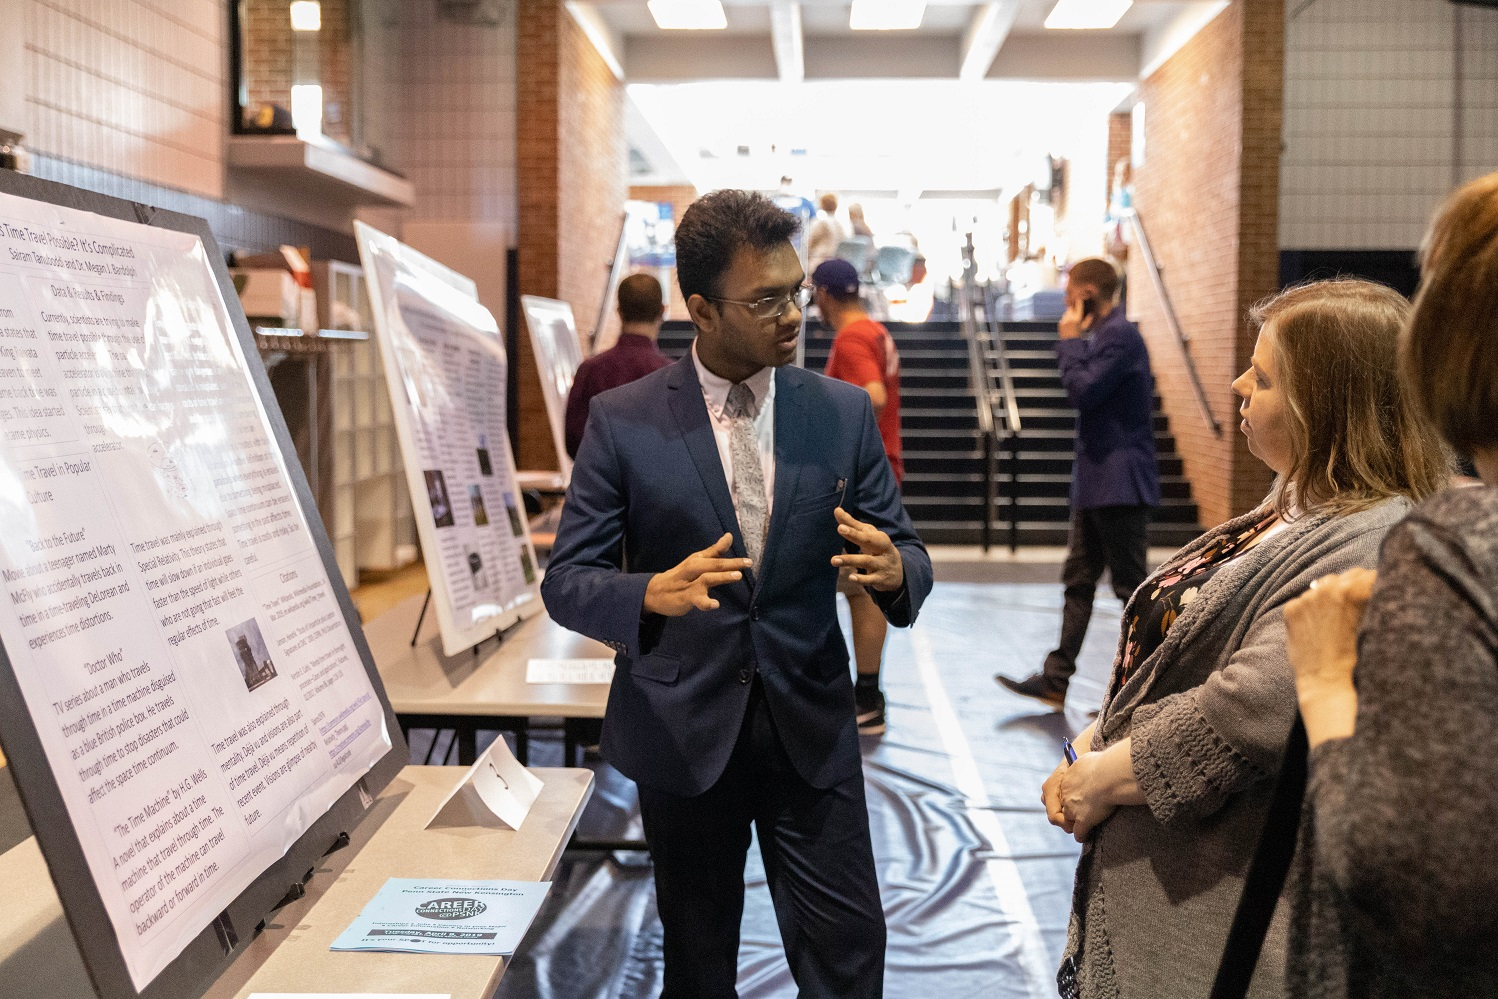 Male student presents research project to two females